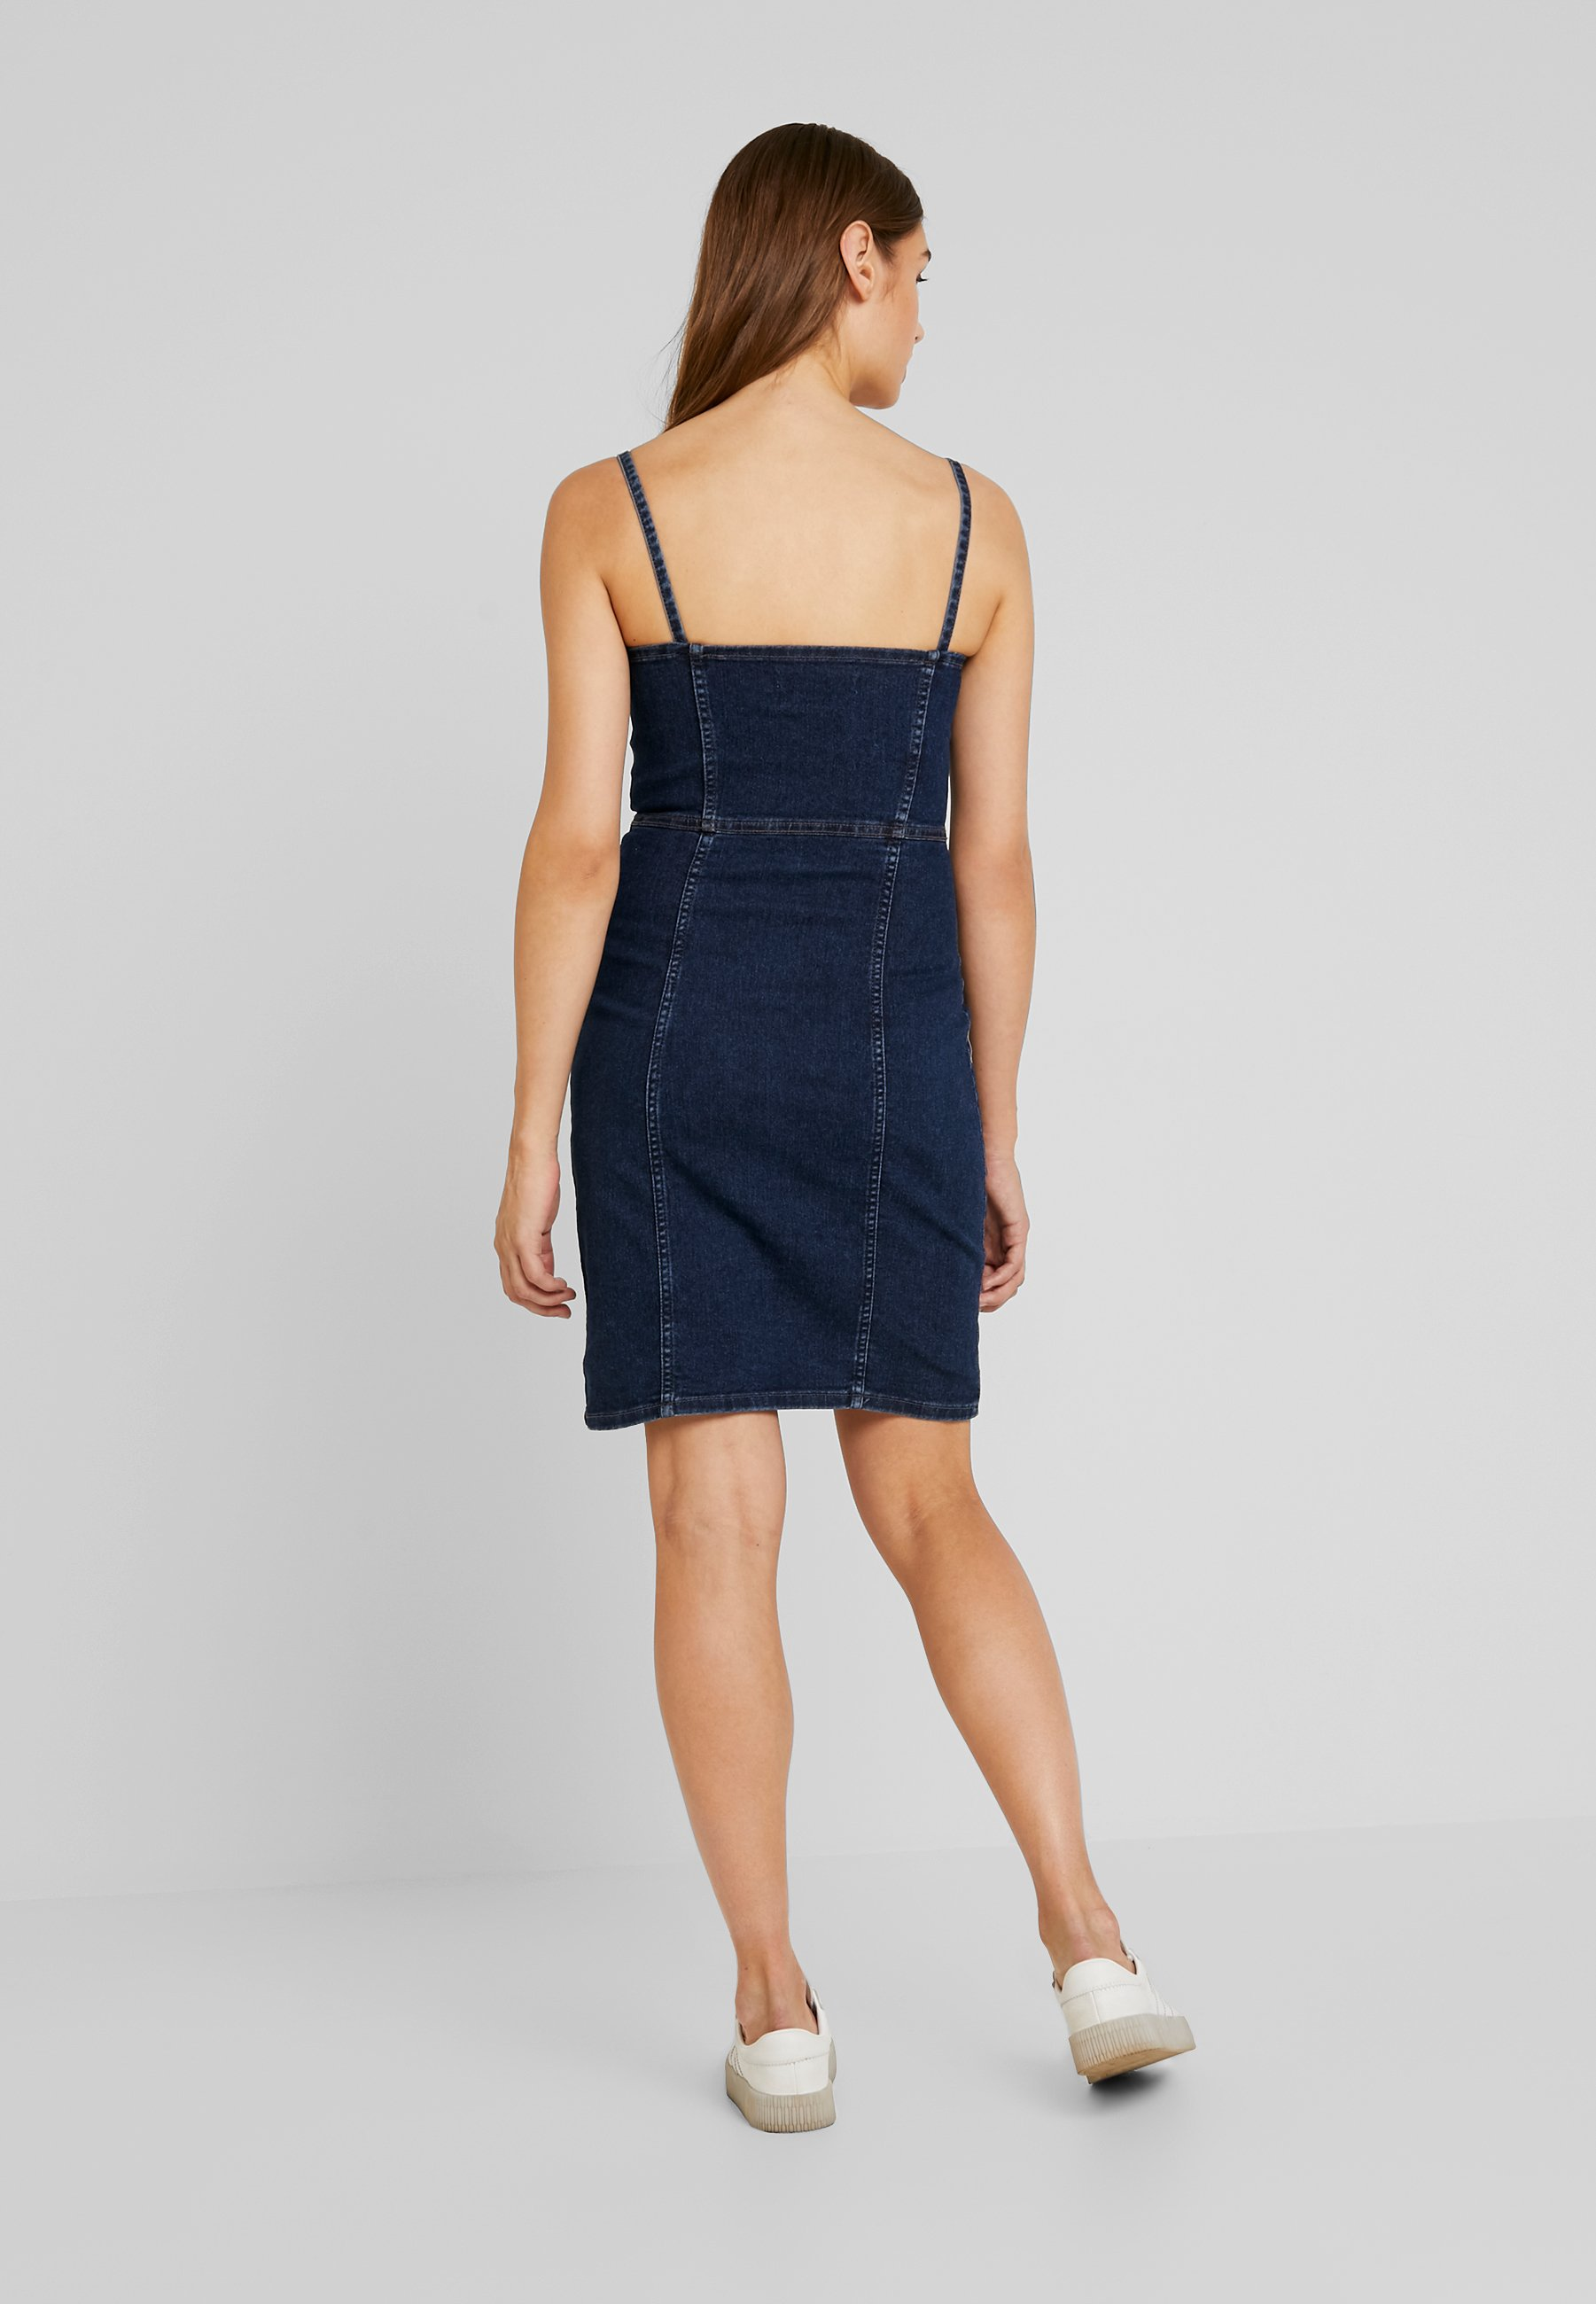 JDY Robe en jean - denim bleu foncé dark blue denim